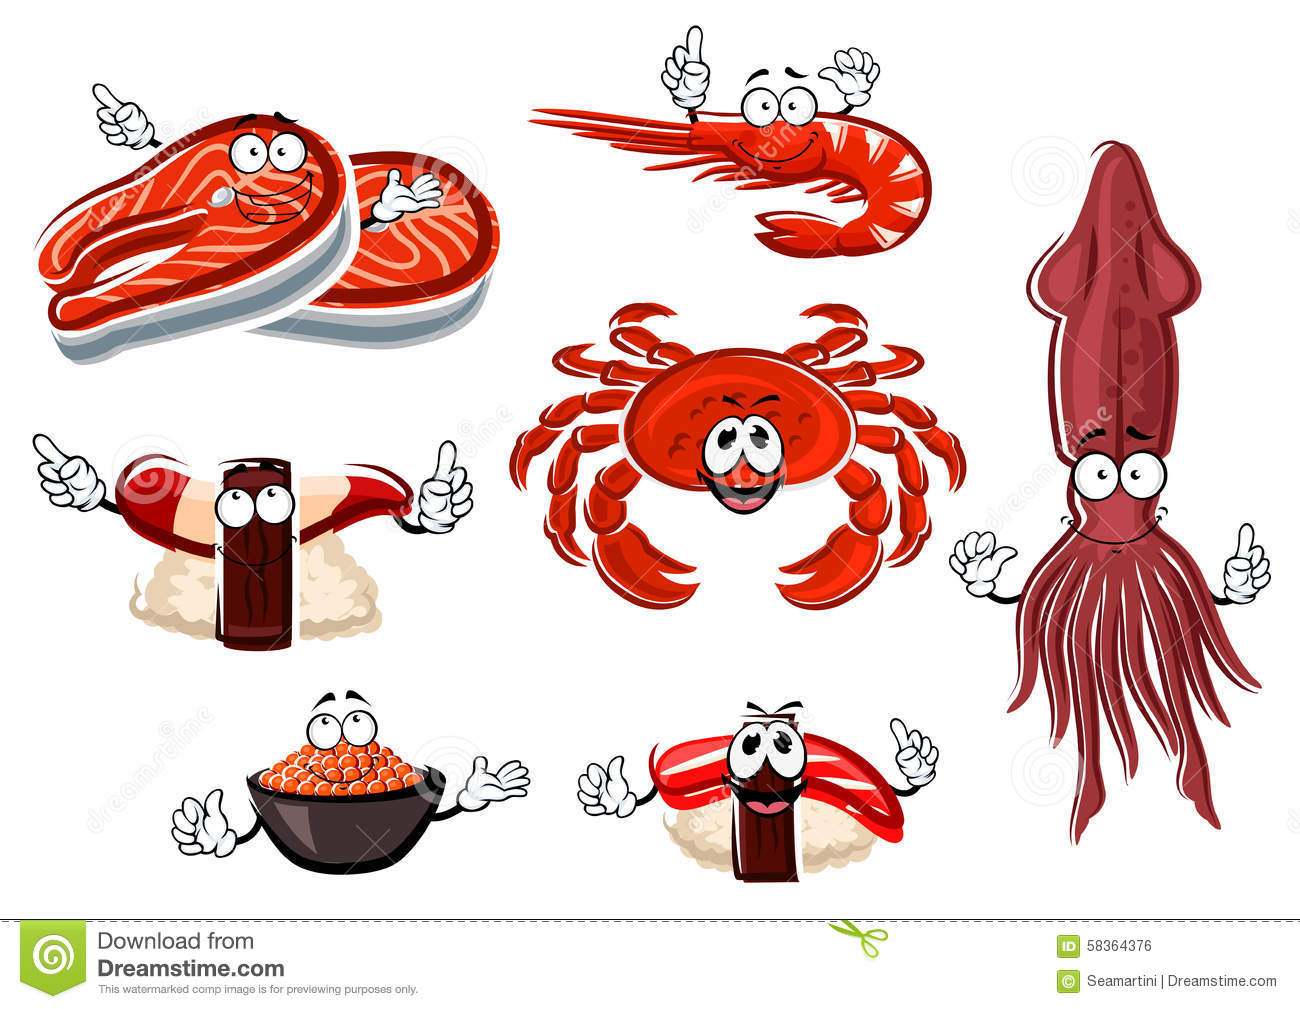 Cartoon seafood and animals characters stock vector for Animals that are included in the cuisine of seafood